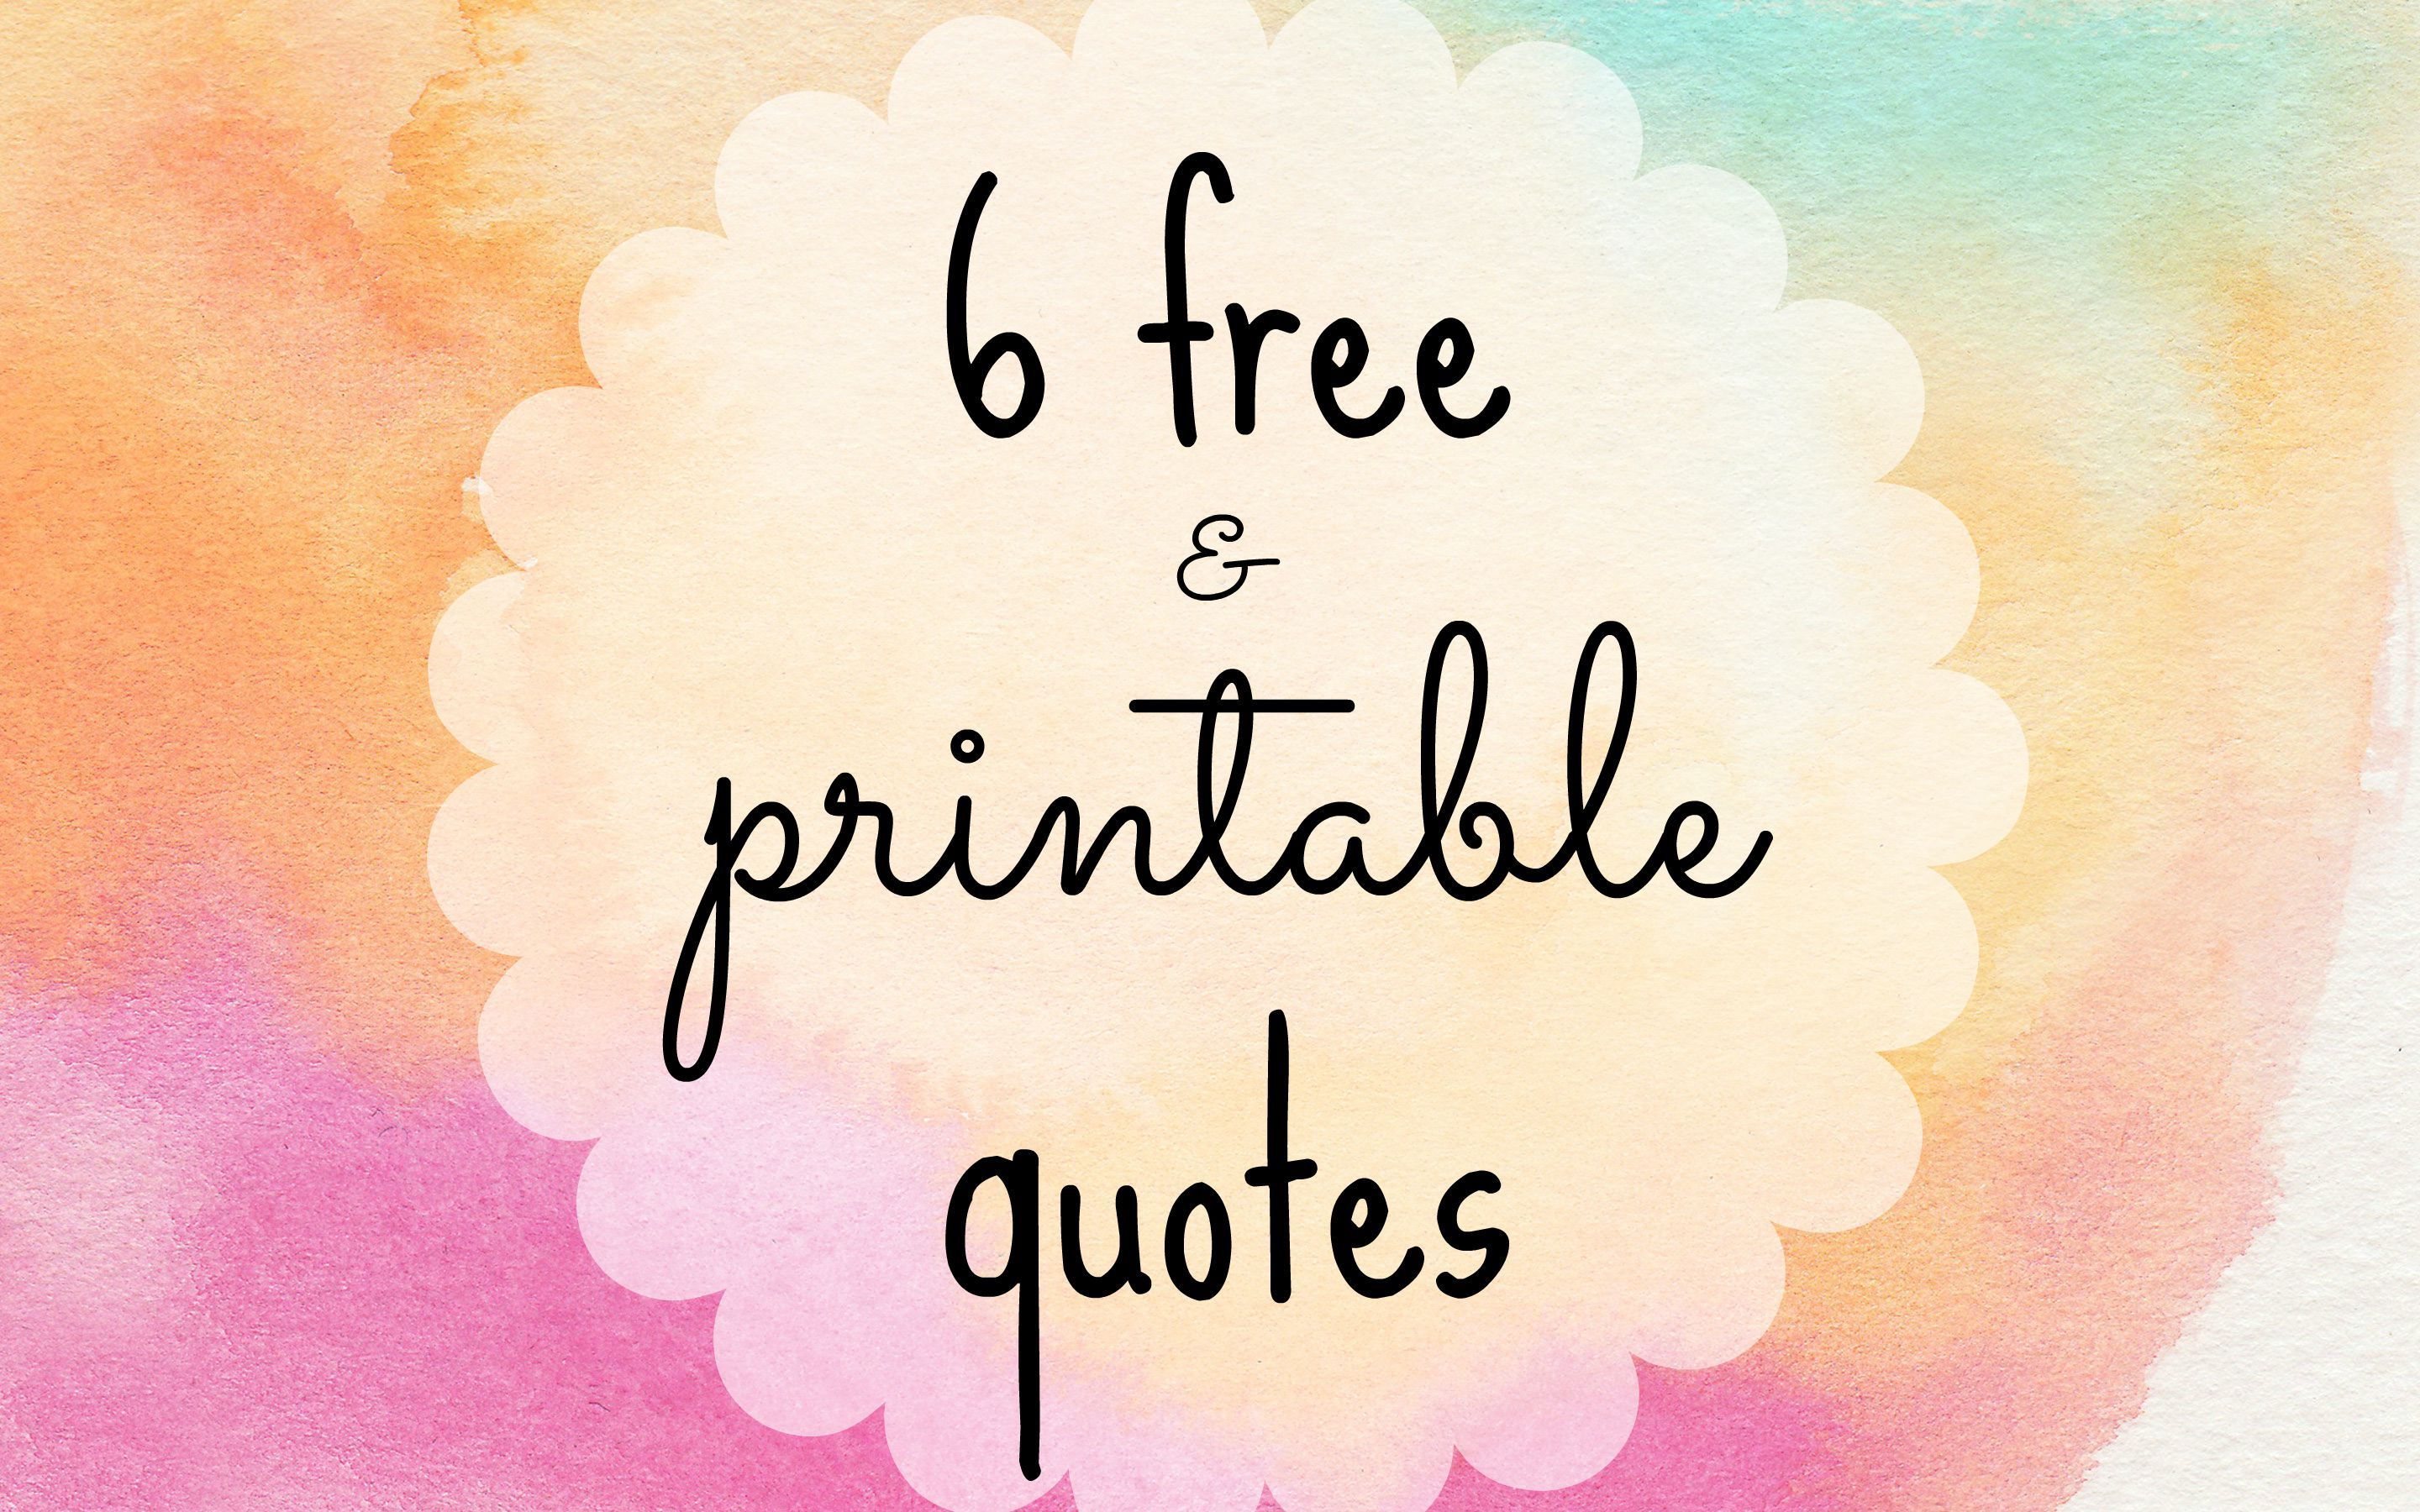 Printable Quotes 6 Free Printable Quotes To Dress Your Deskinspiring And .